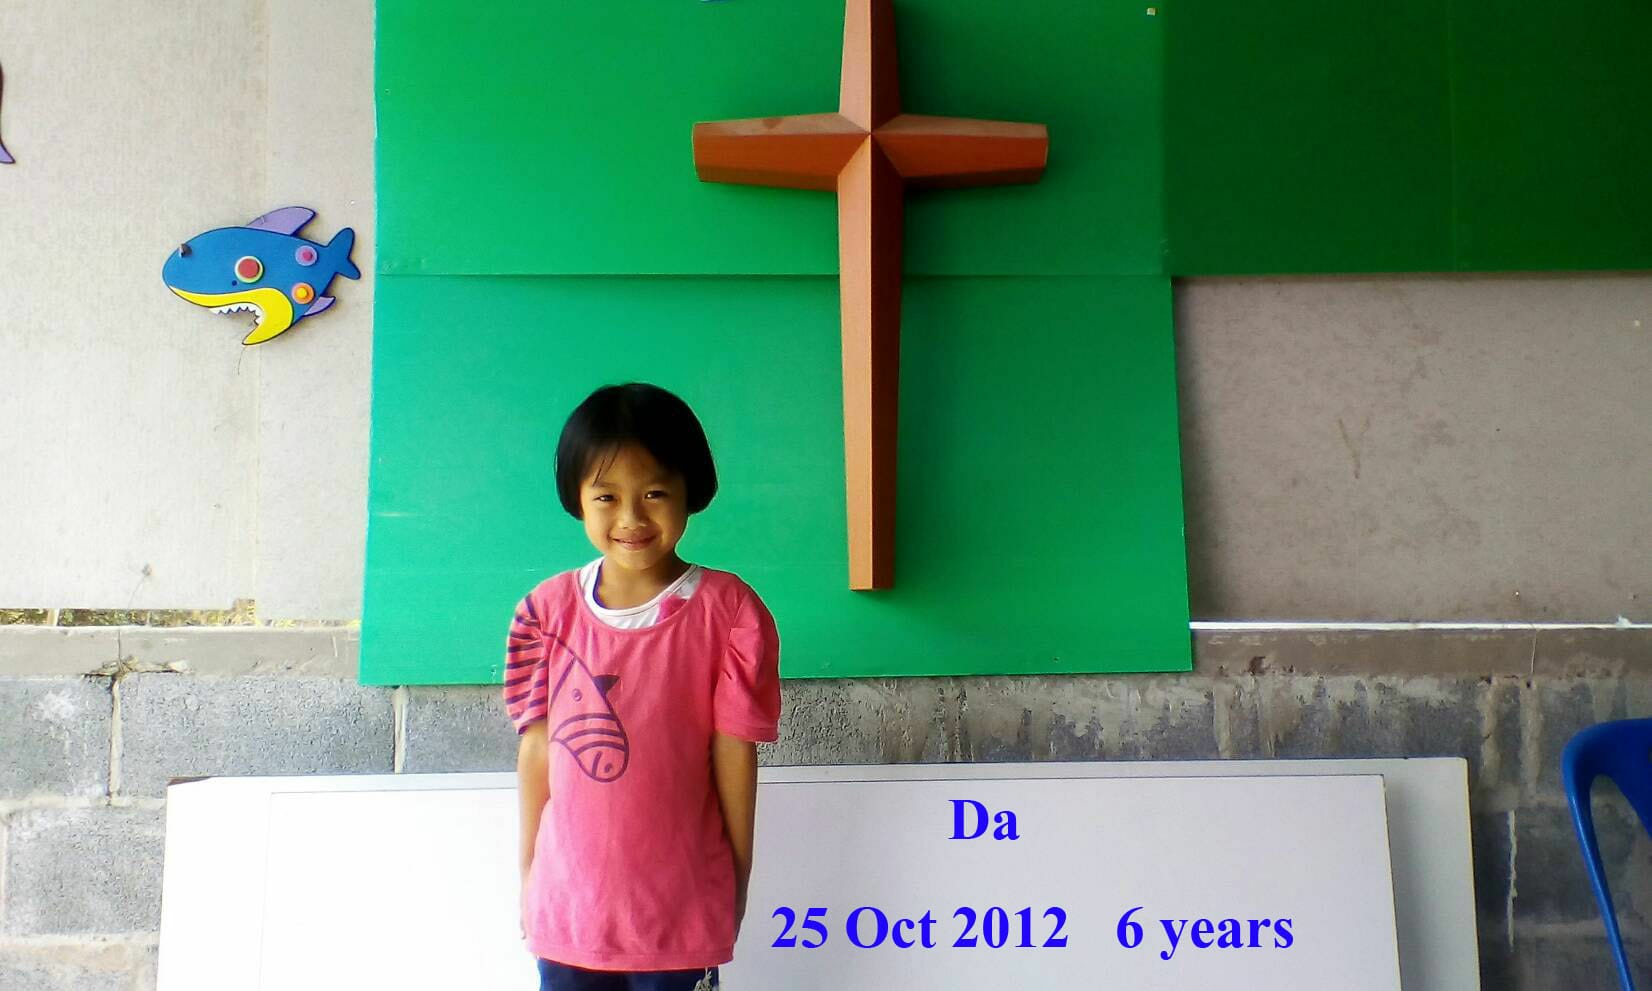 Da (6 years old, girl)